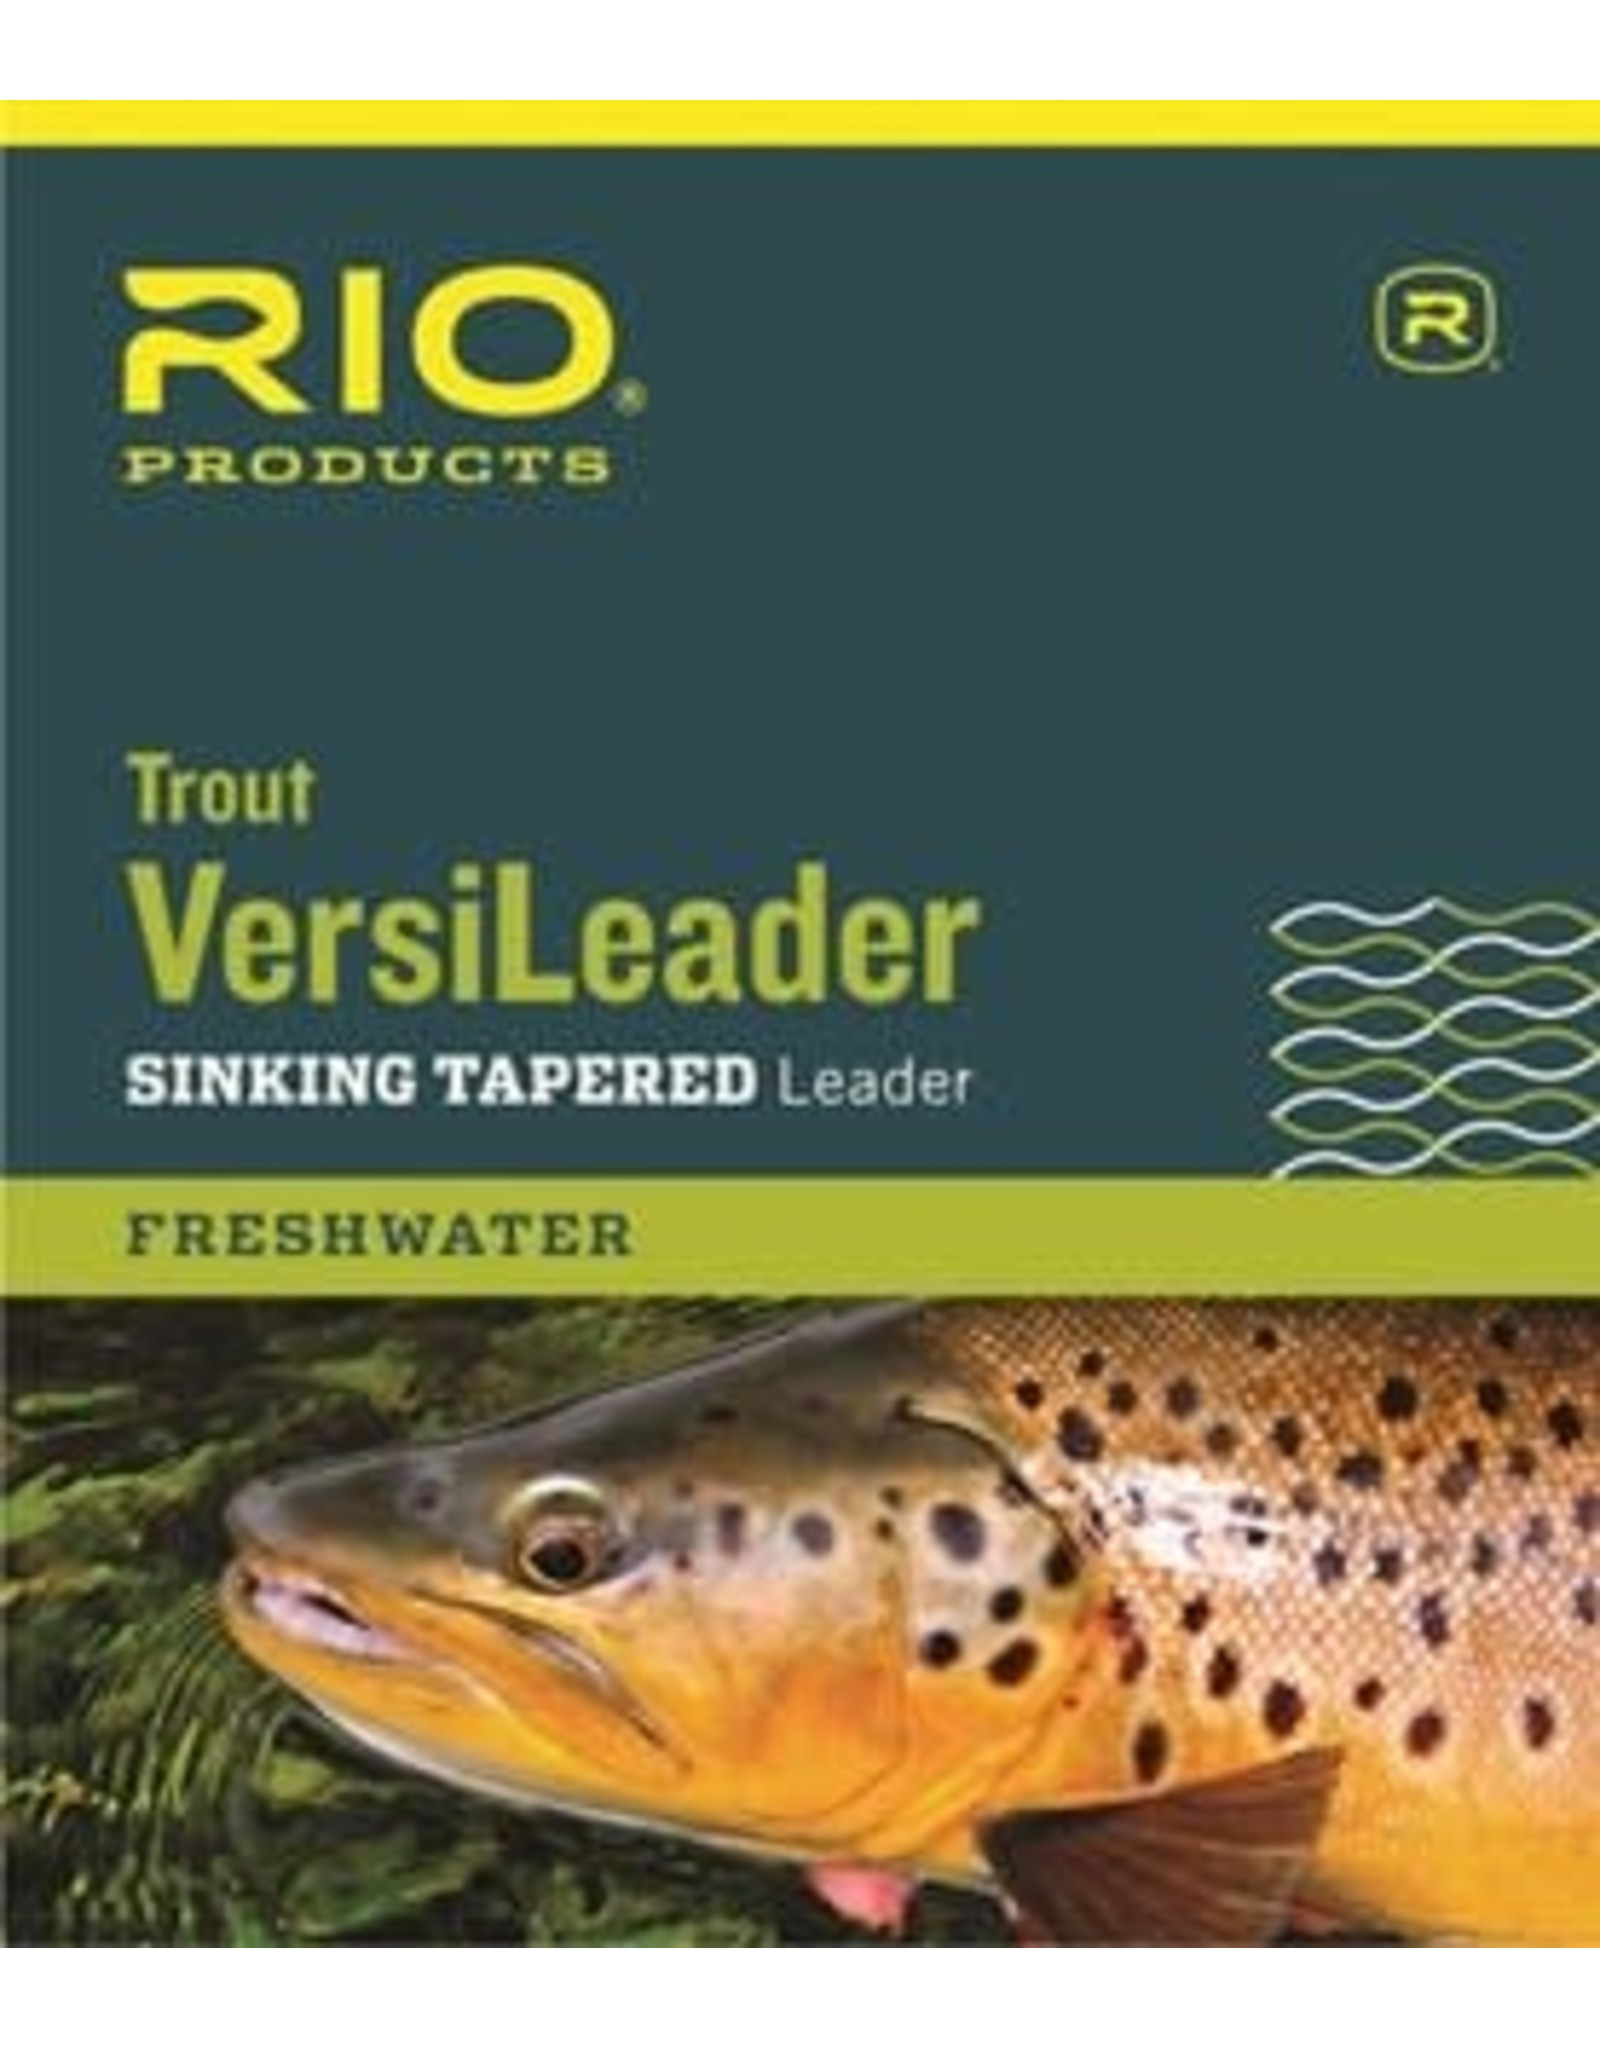 RIO RIO TROUT VERSILEADER SINKING TAPERED LEADER